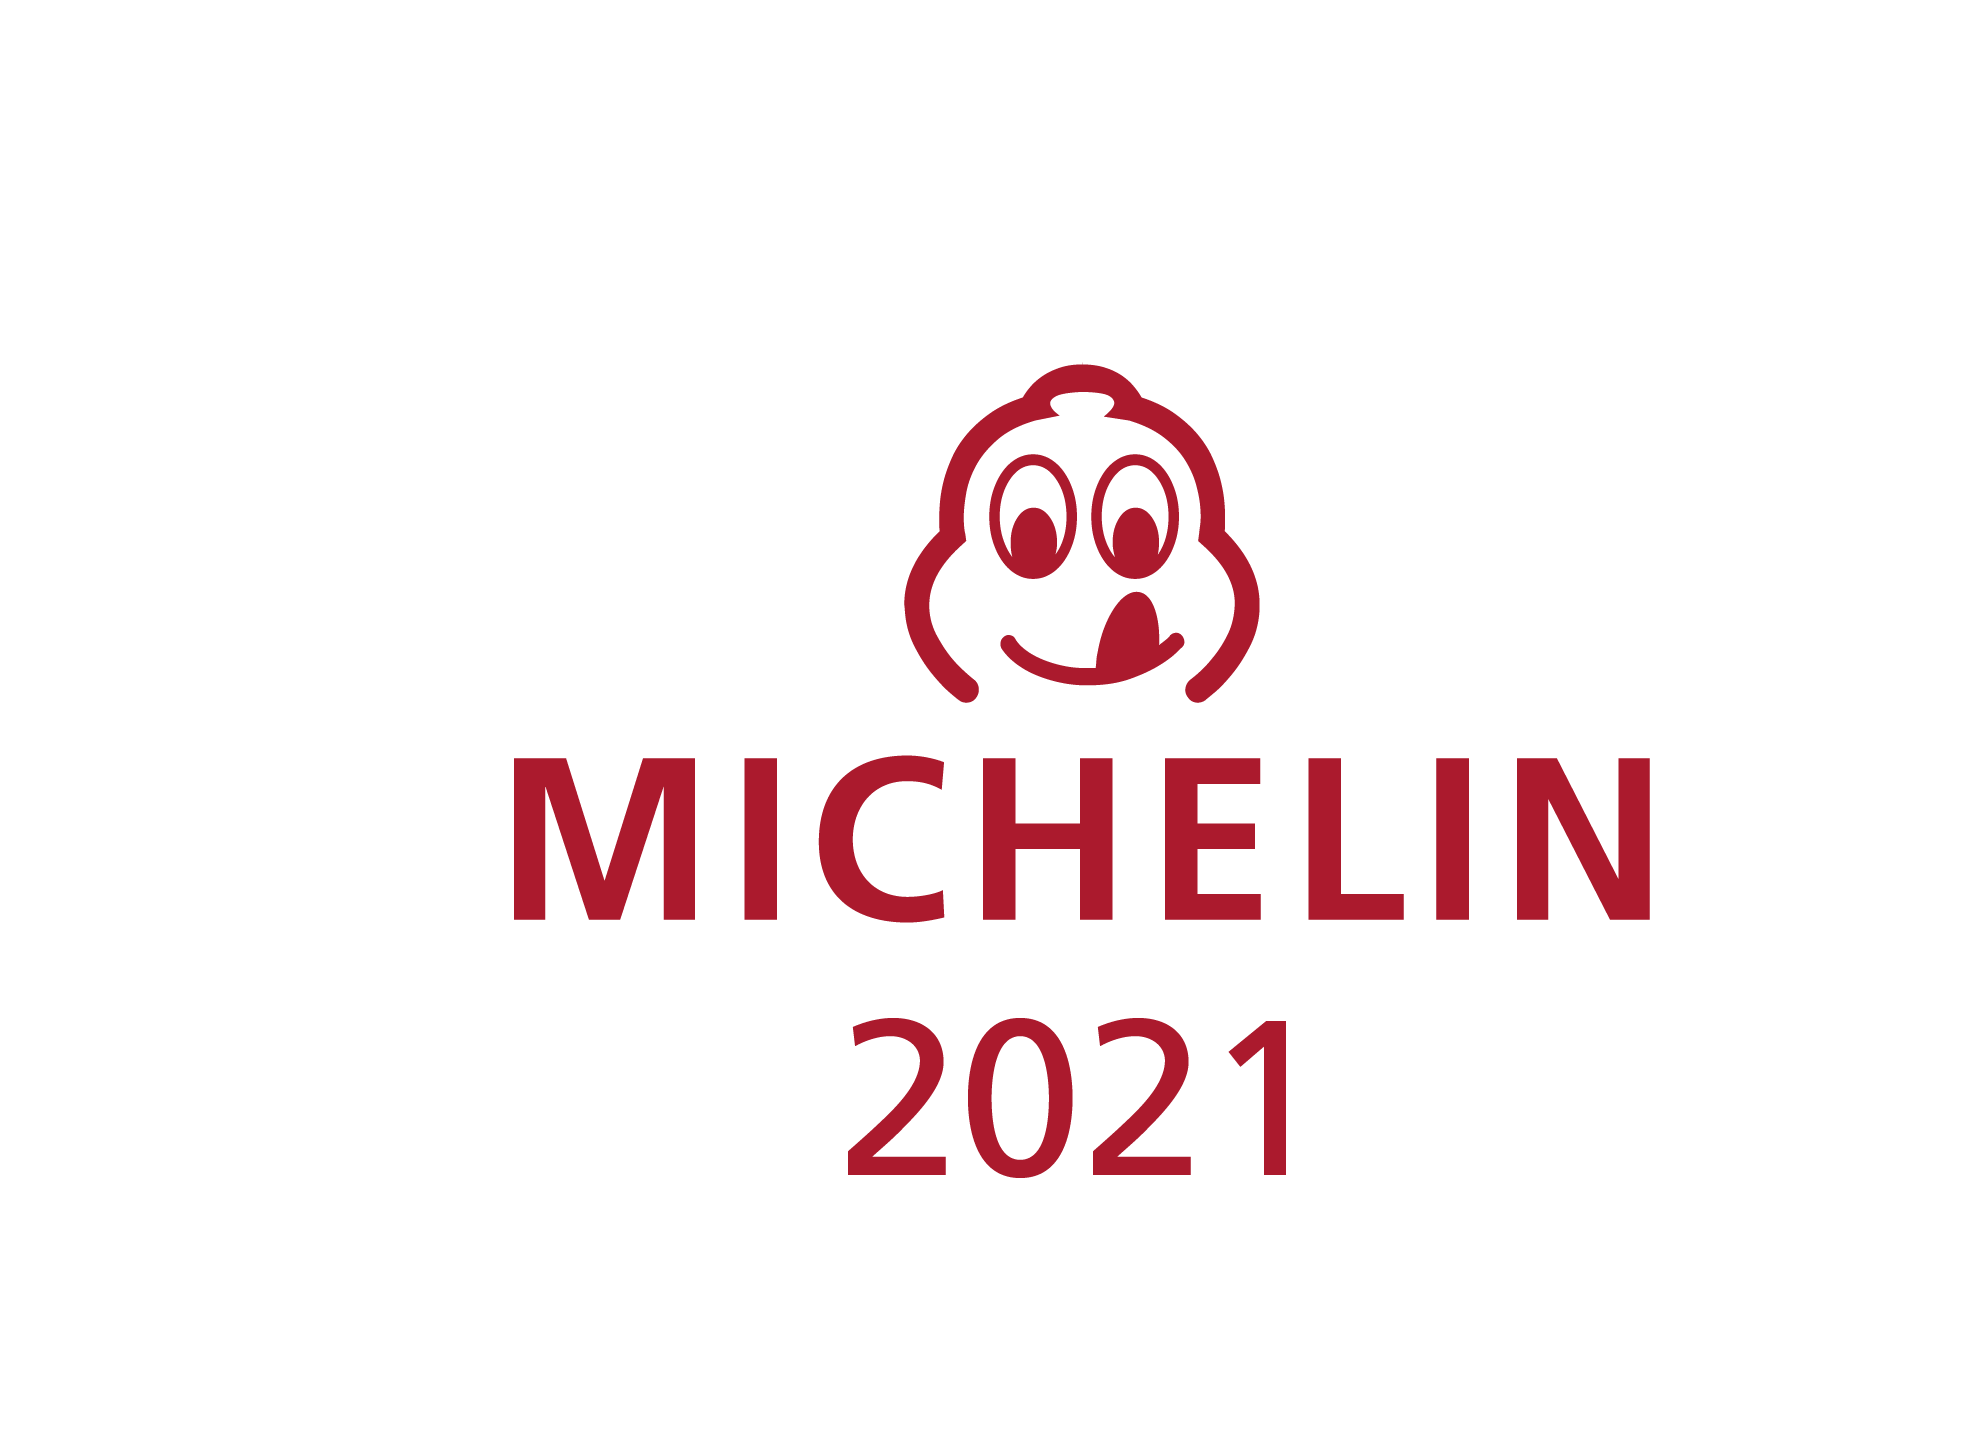 2 Estaciones Bib Gourmand Michelin